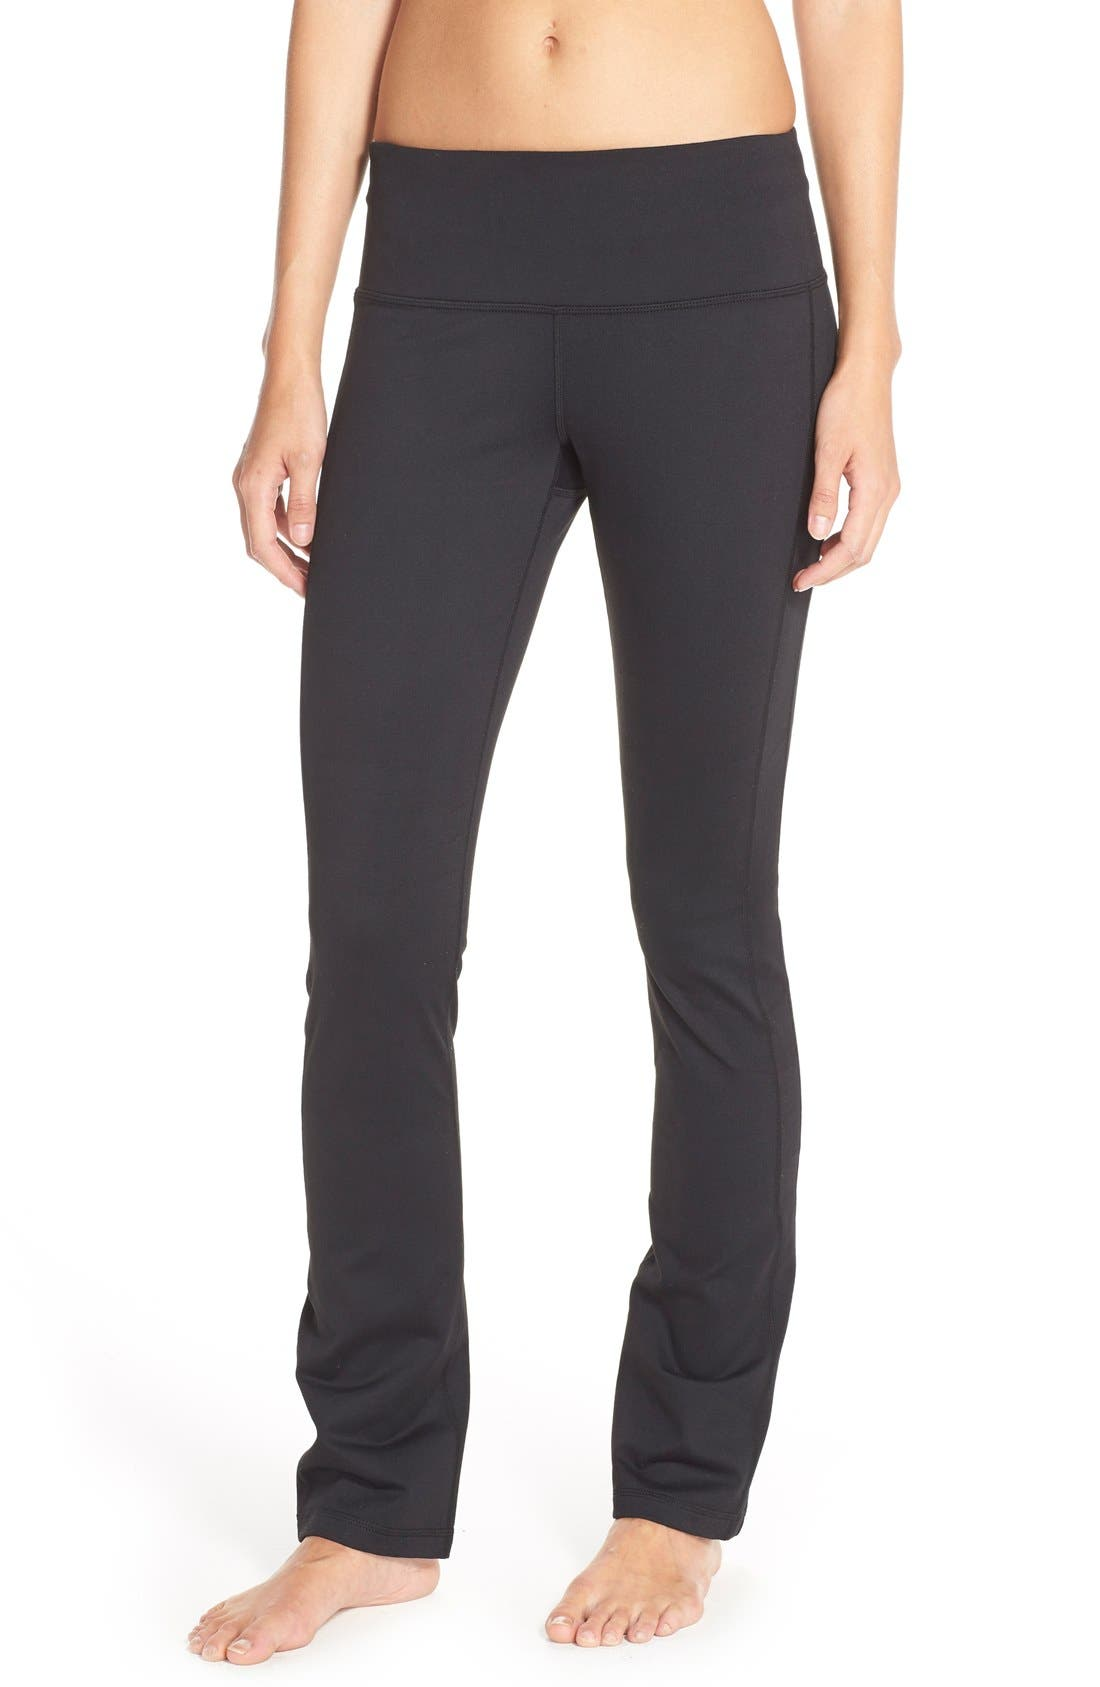 4c0f9b9db46c0 Women's Zella Clothing | Nordstrom